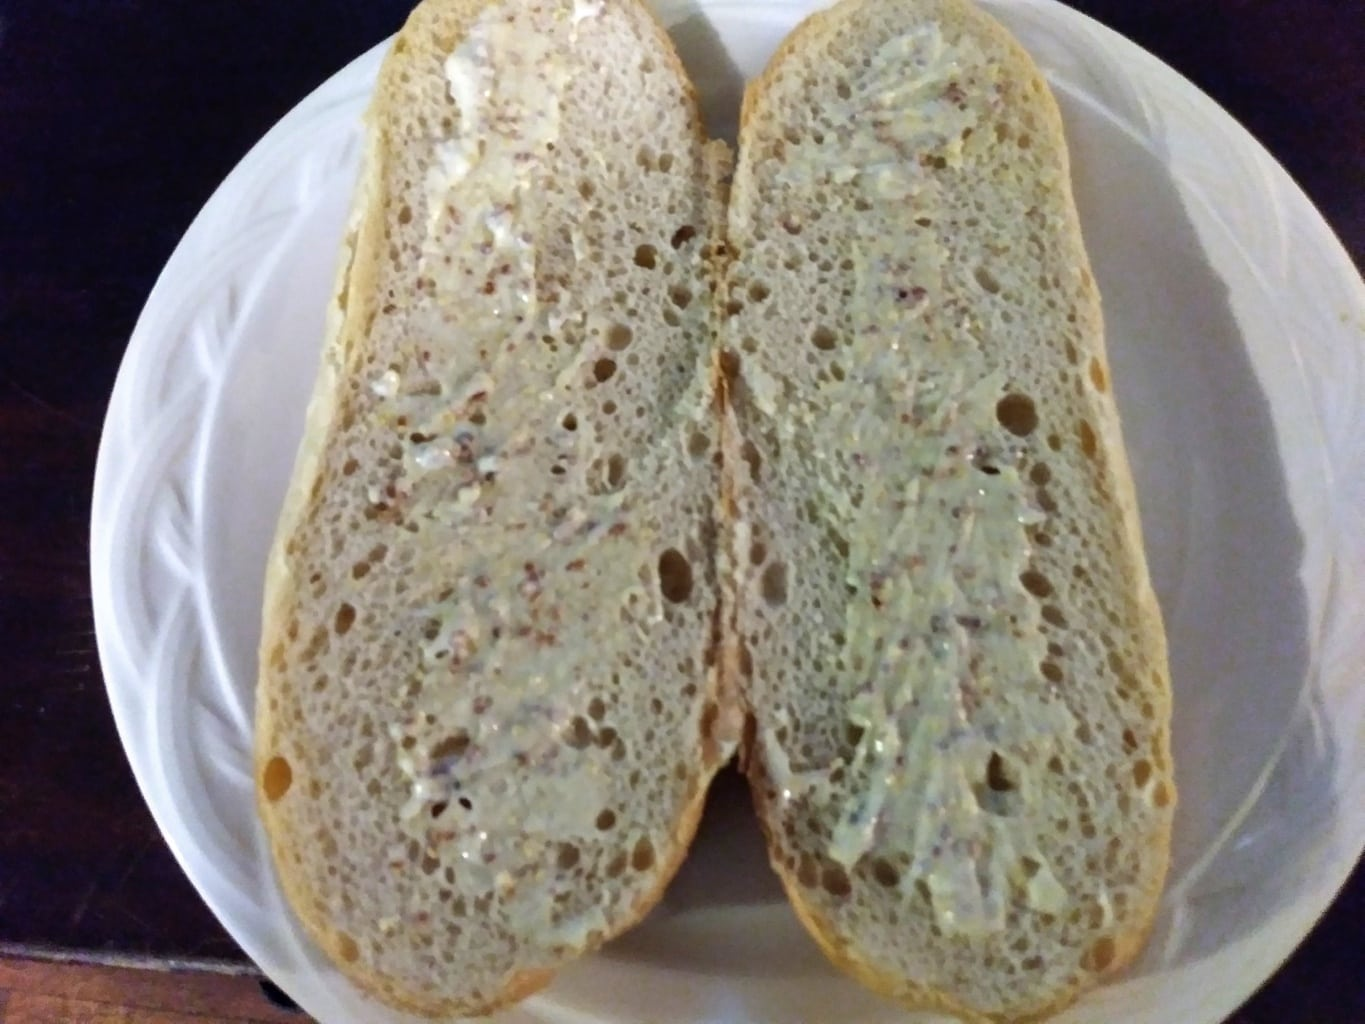 Spread mayo mix on bread